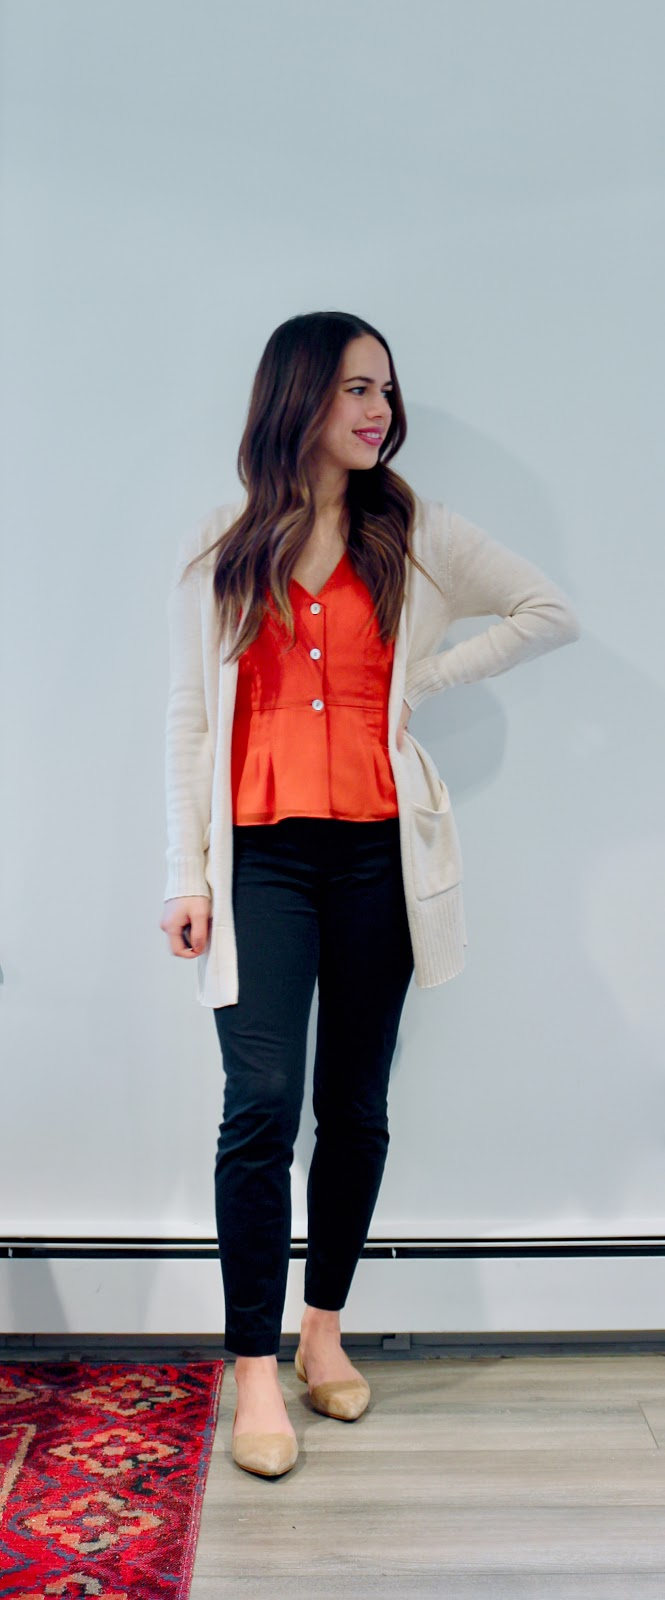 Jules in Flats - Aritzia Wilfred New Button Front Blouse with Boyfriend Cardigan (Business Casual Winter Workwear on a Budget)